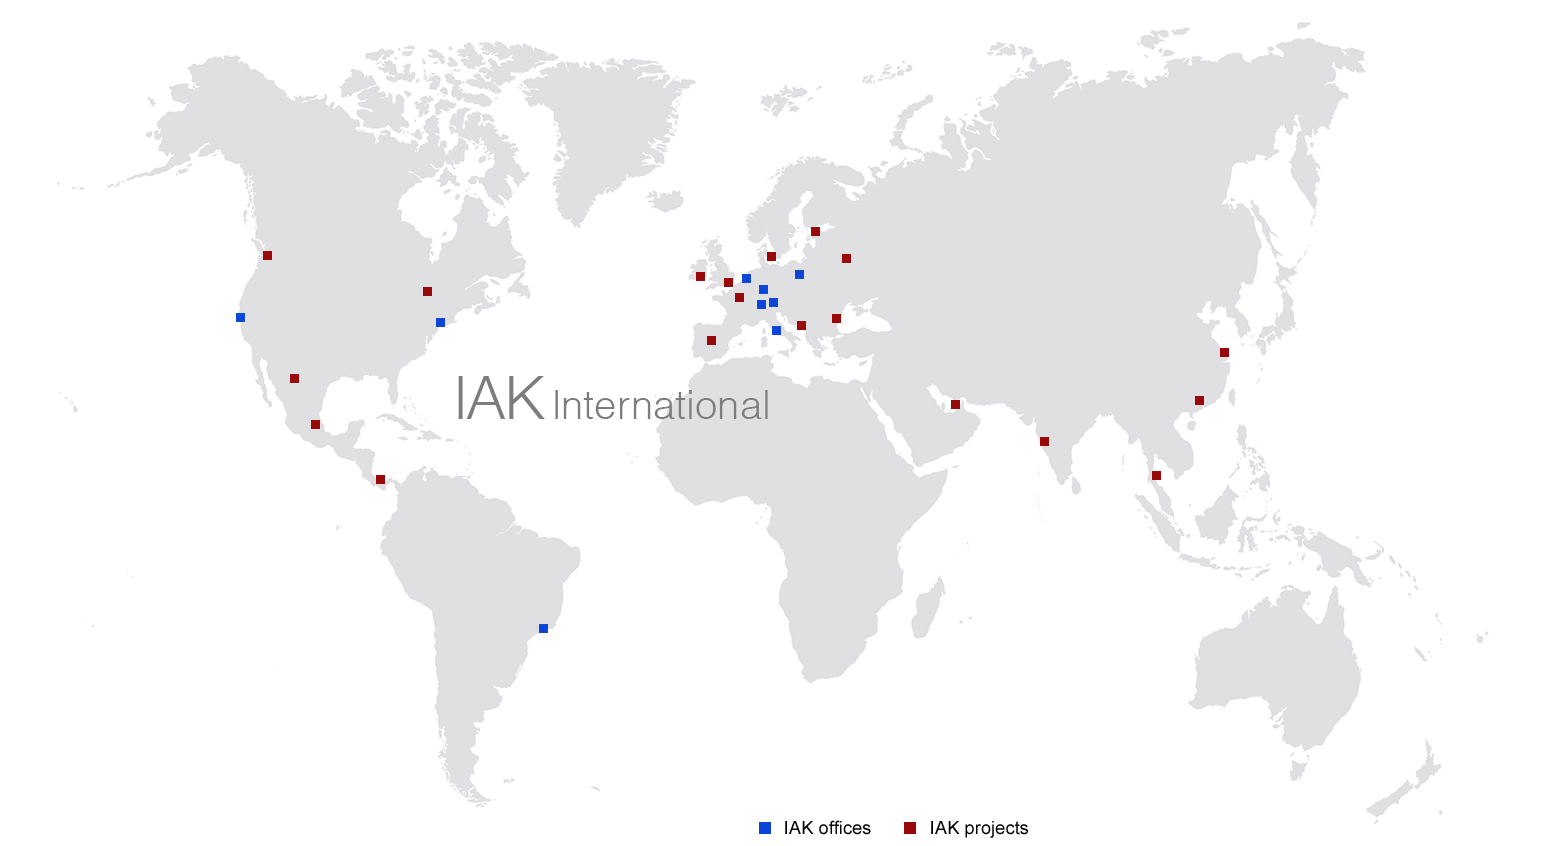 IAK International